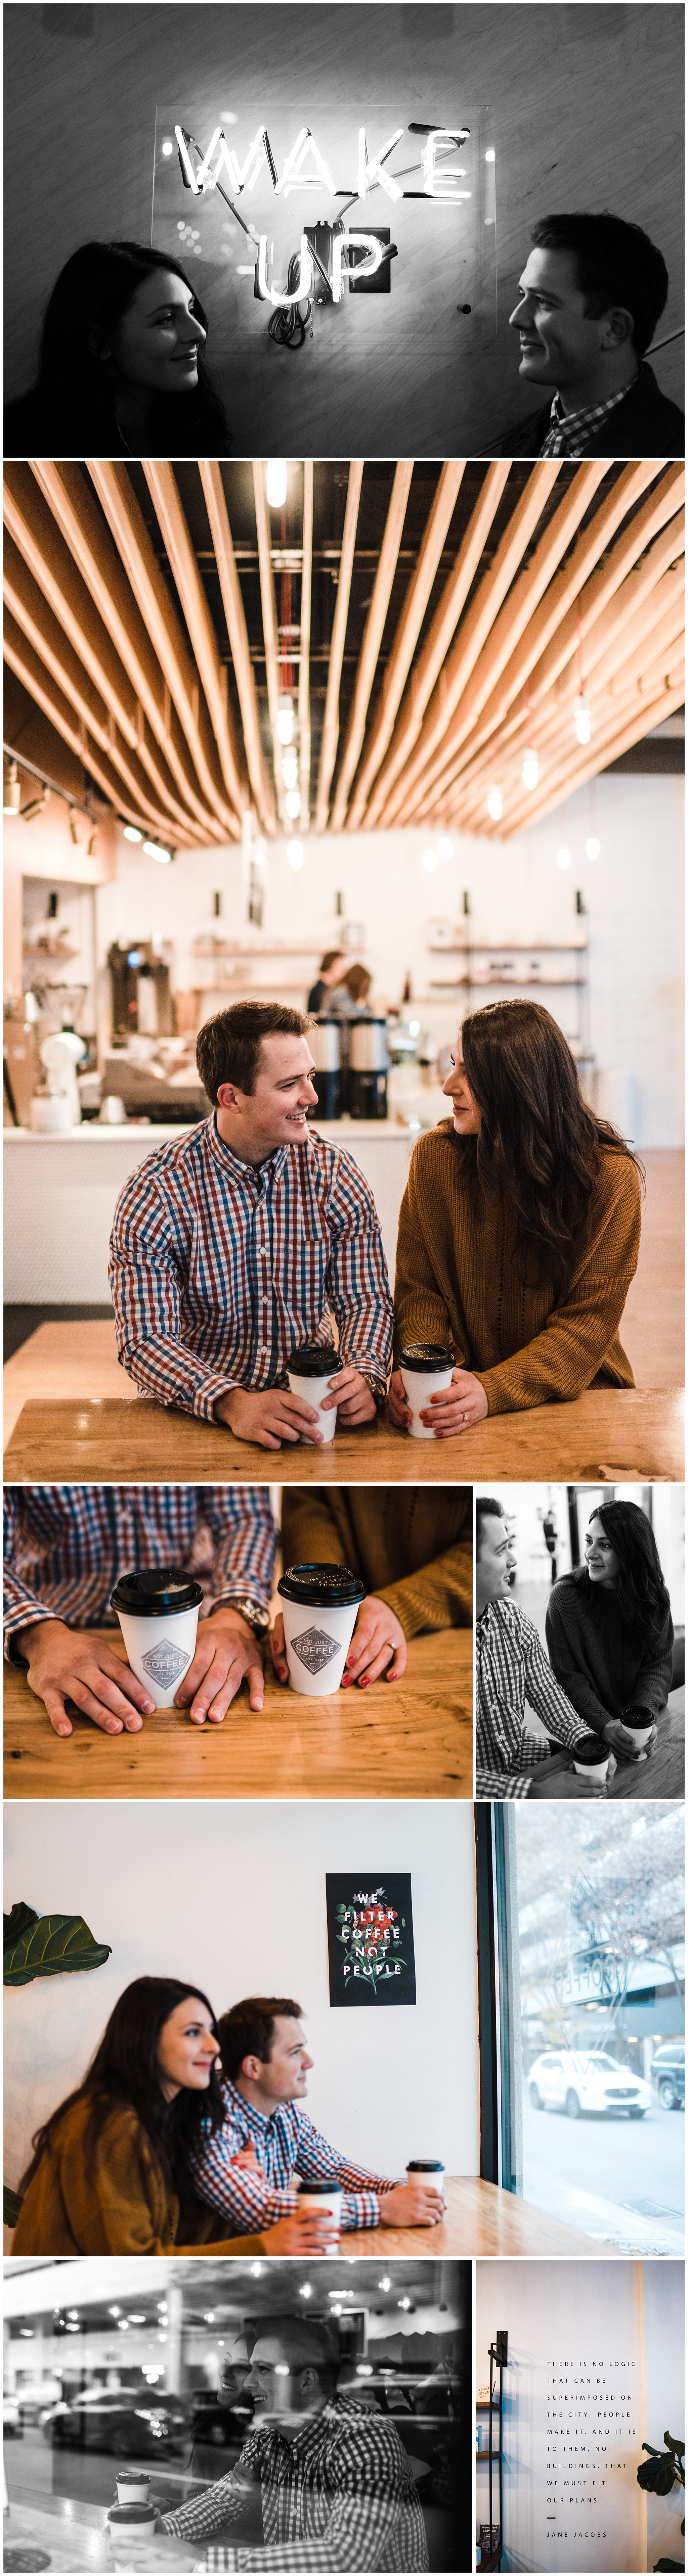 Easterday Creative | Adventurous wedding photographer and storyteller | Rachel + Evan | Uptown Charlotte Sunrise Session | Charlotte, NC